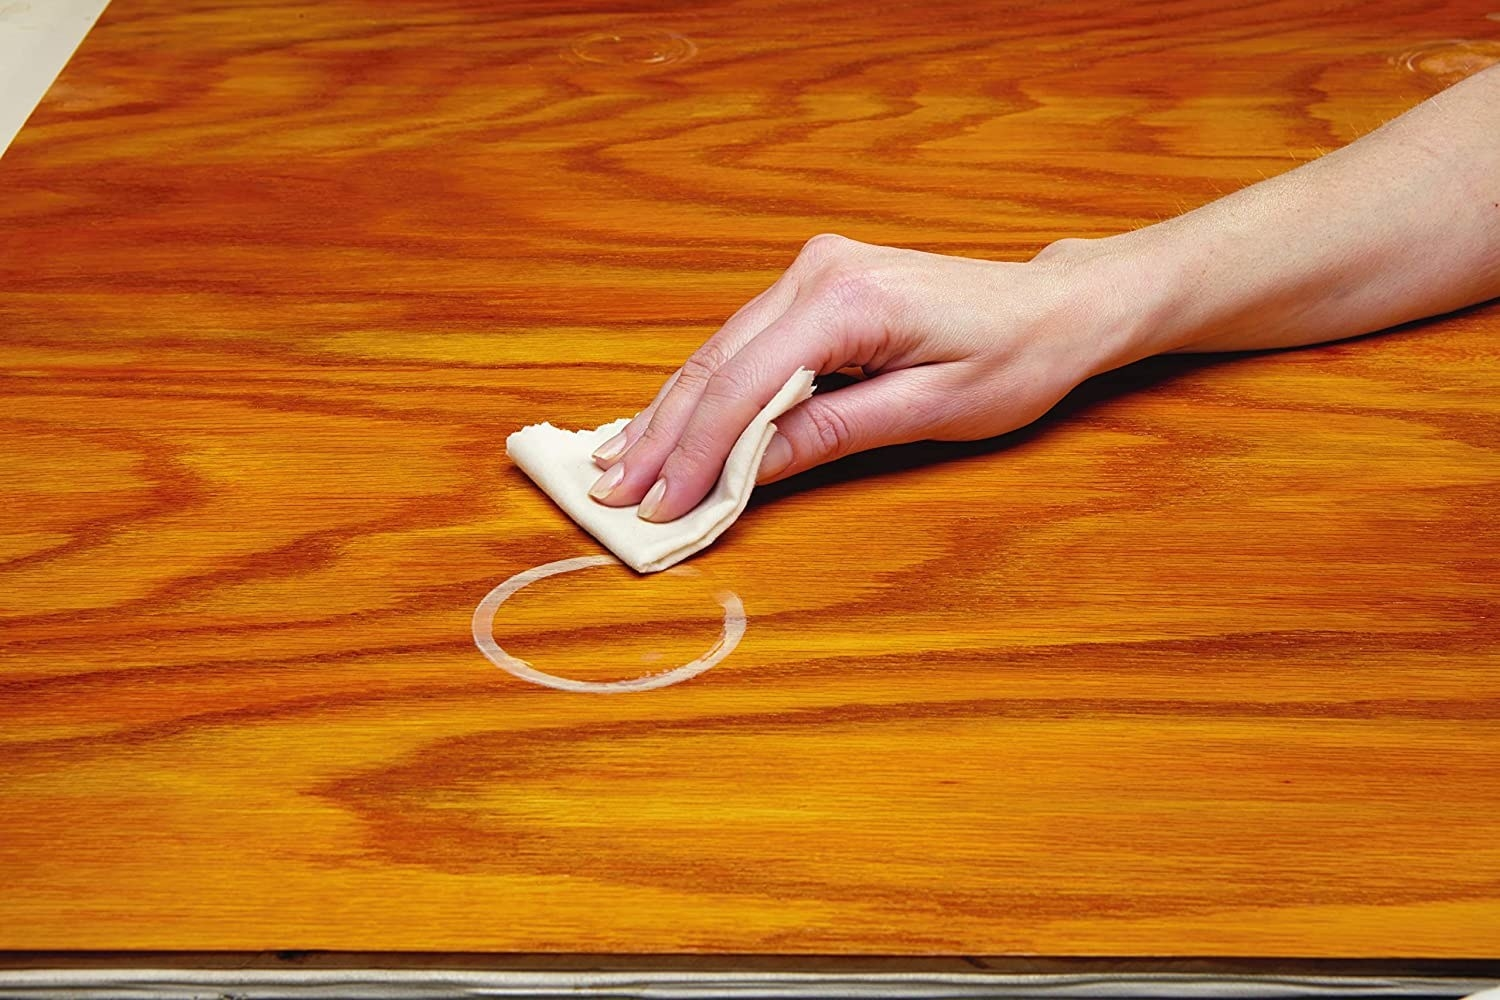 The wipe removes a stubborn coffee cup ring from a wooden table